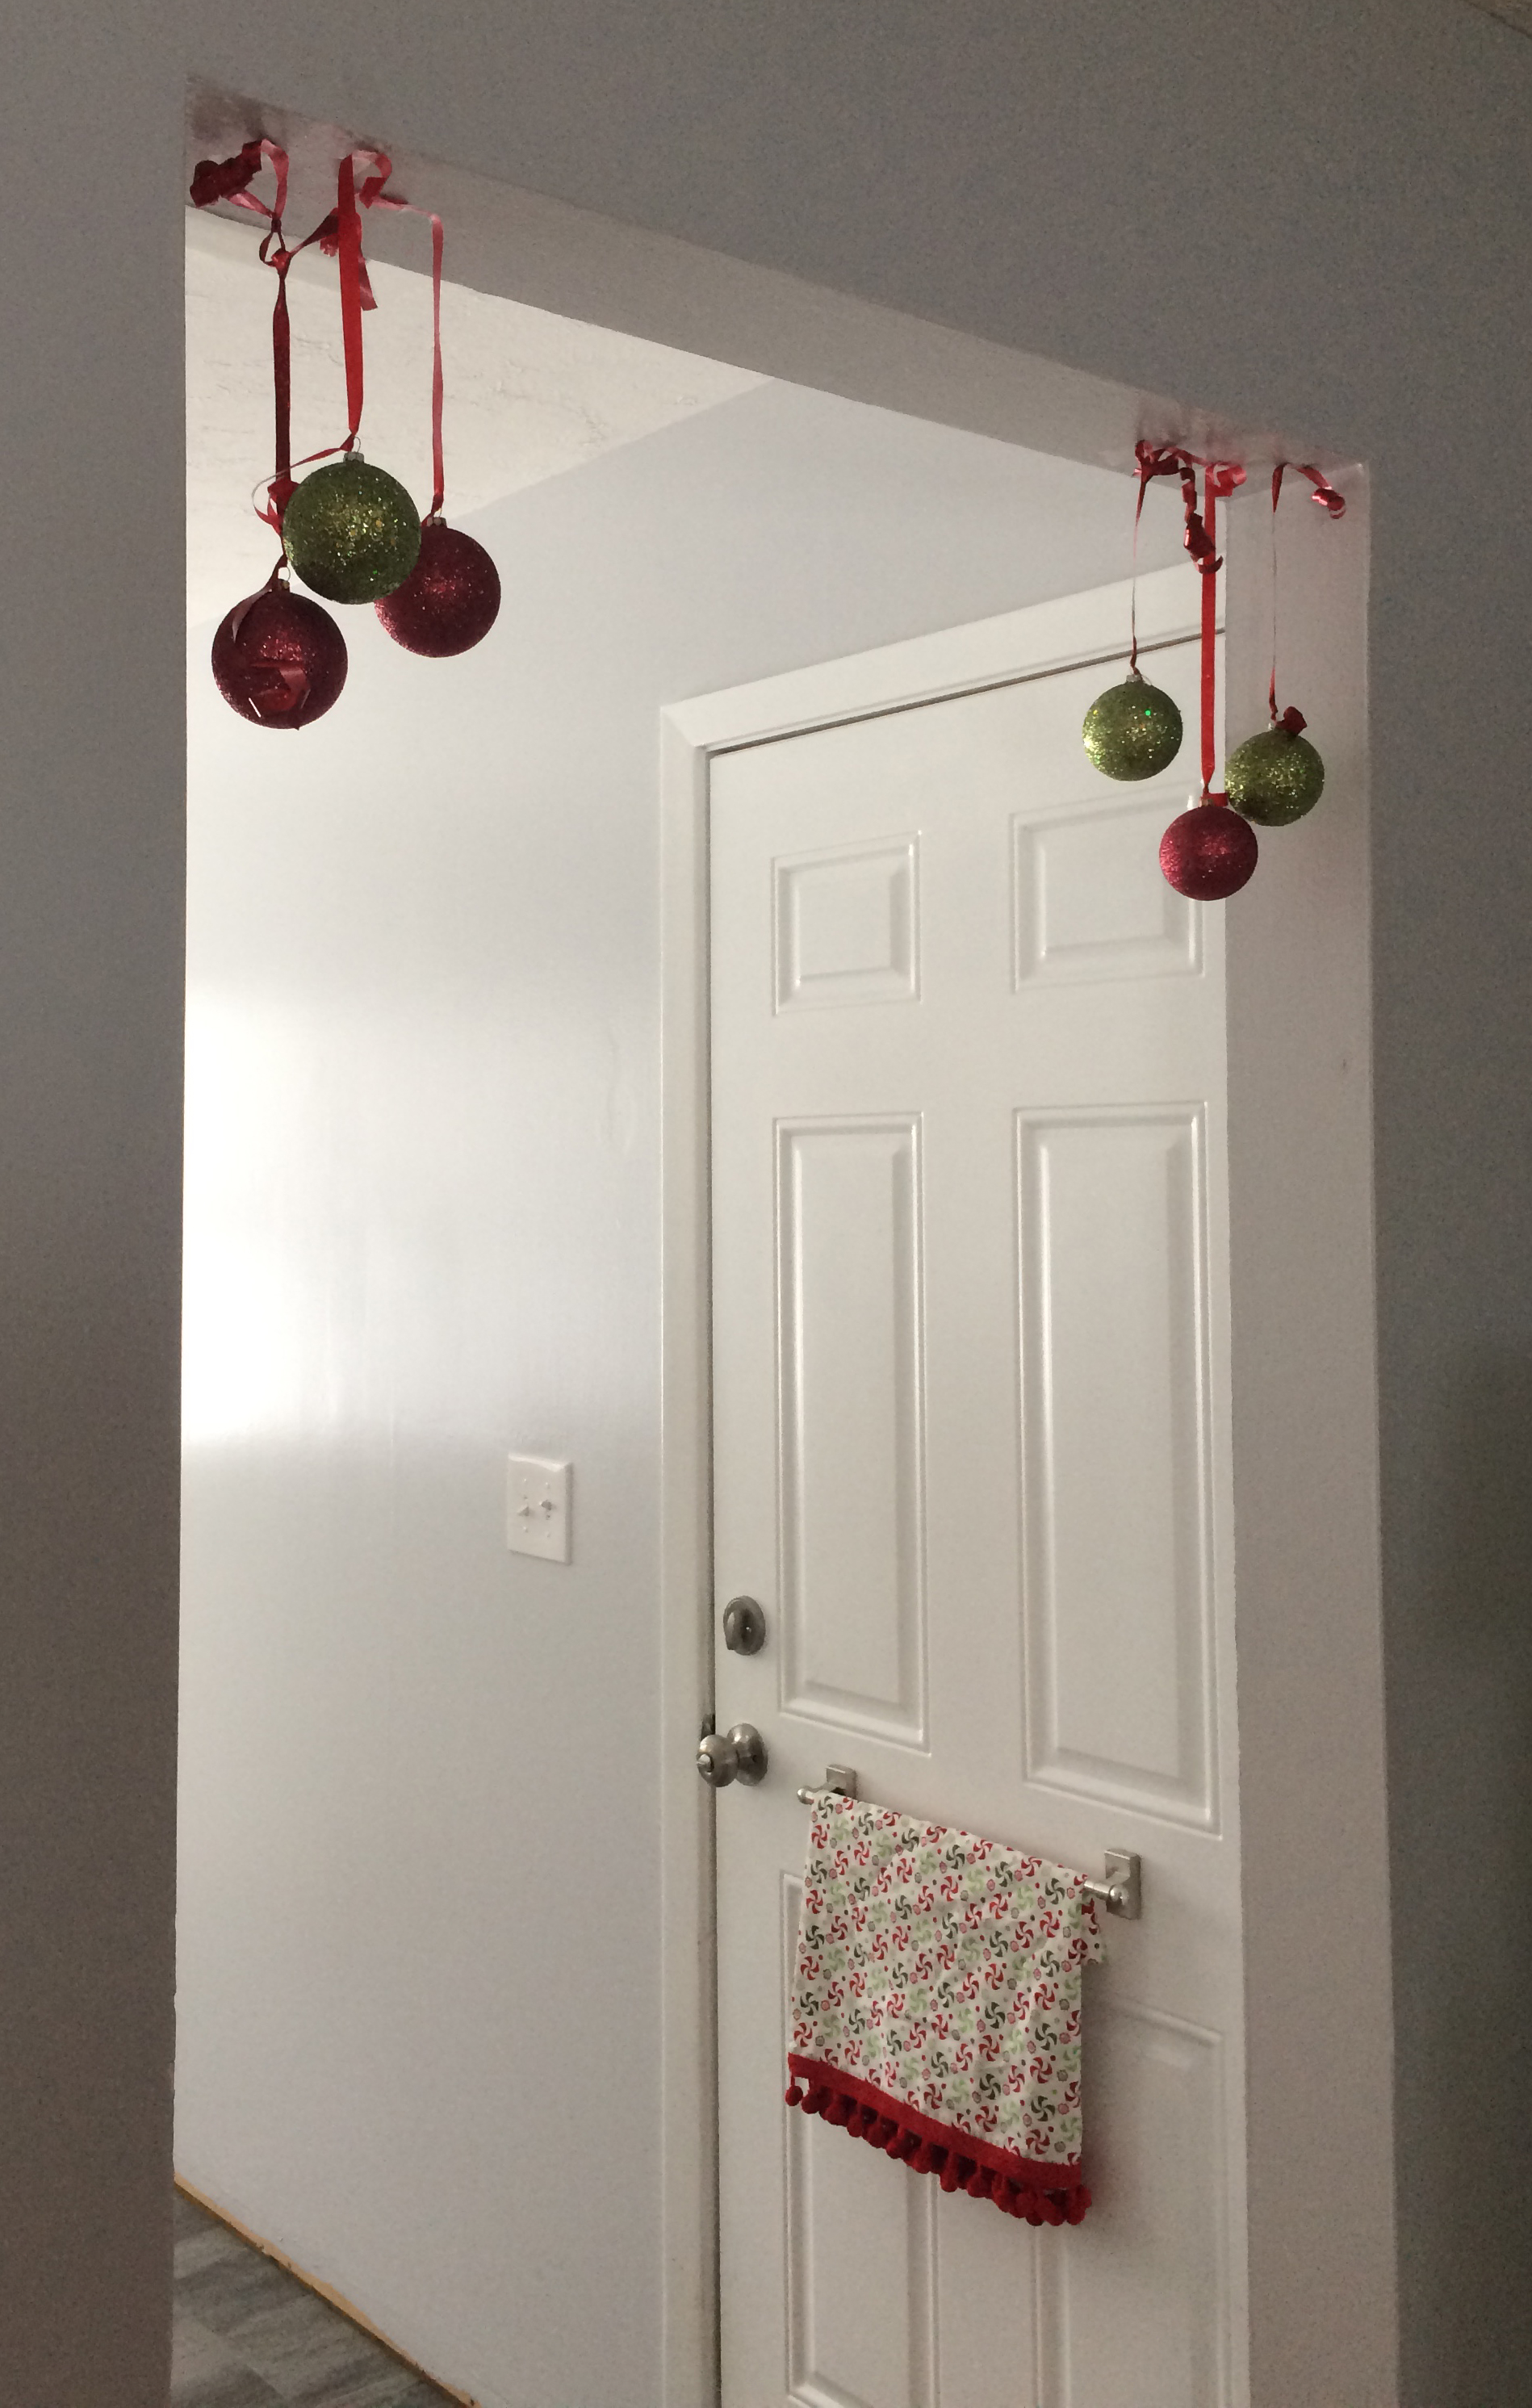 3. Hang Ornaments in Unexpected Places -